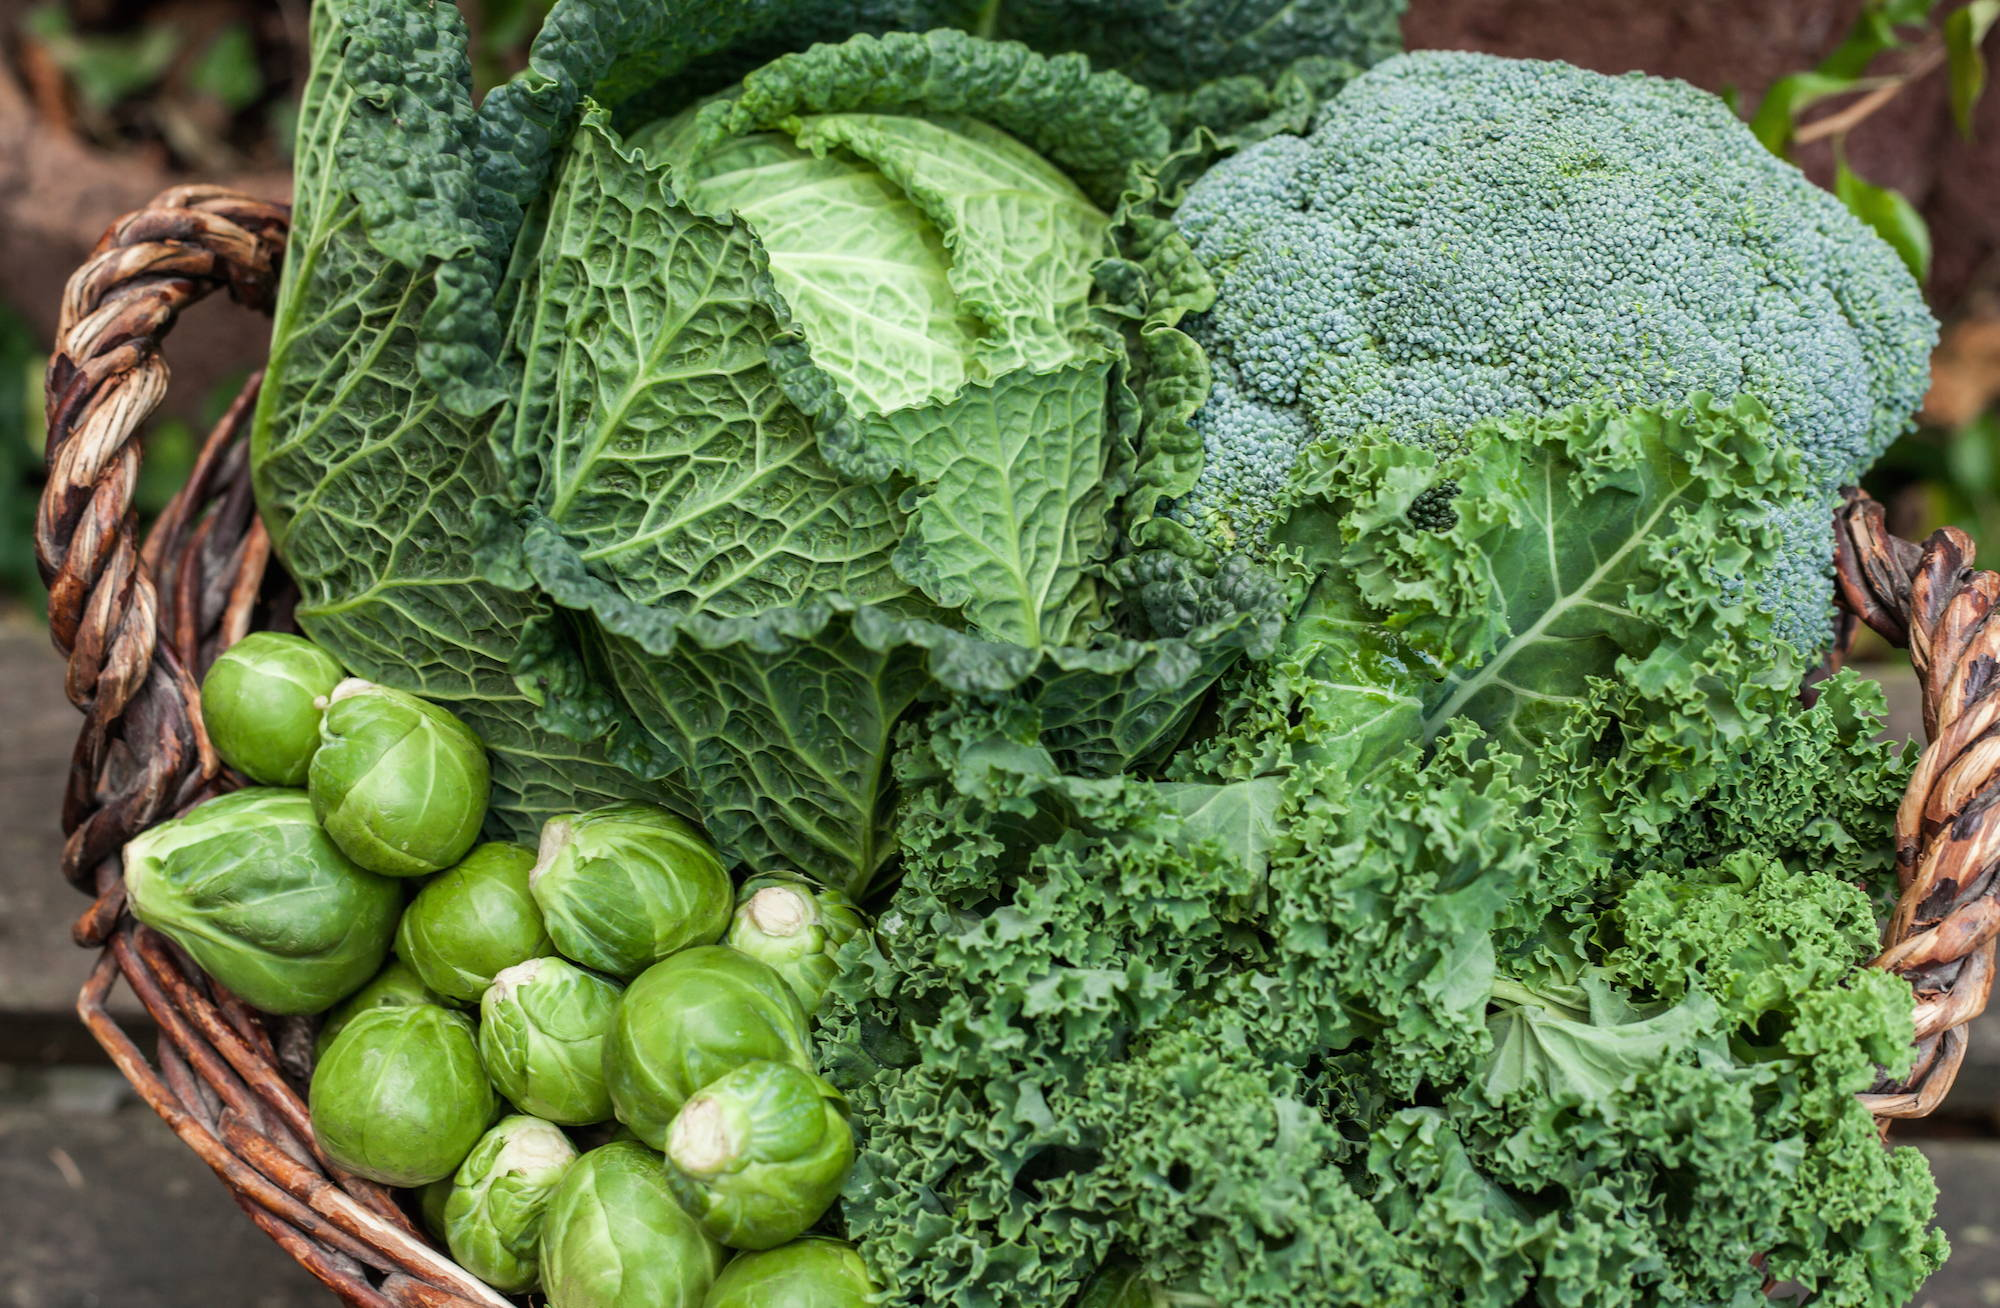 Cruciferous vegetables are a source of folate - an important nutrient for sperm and egg cells